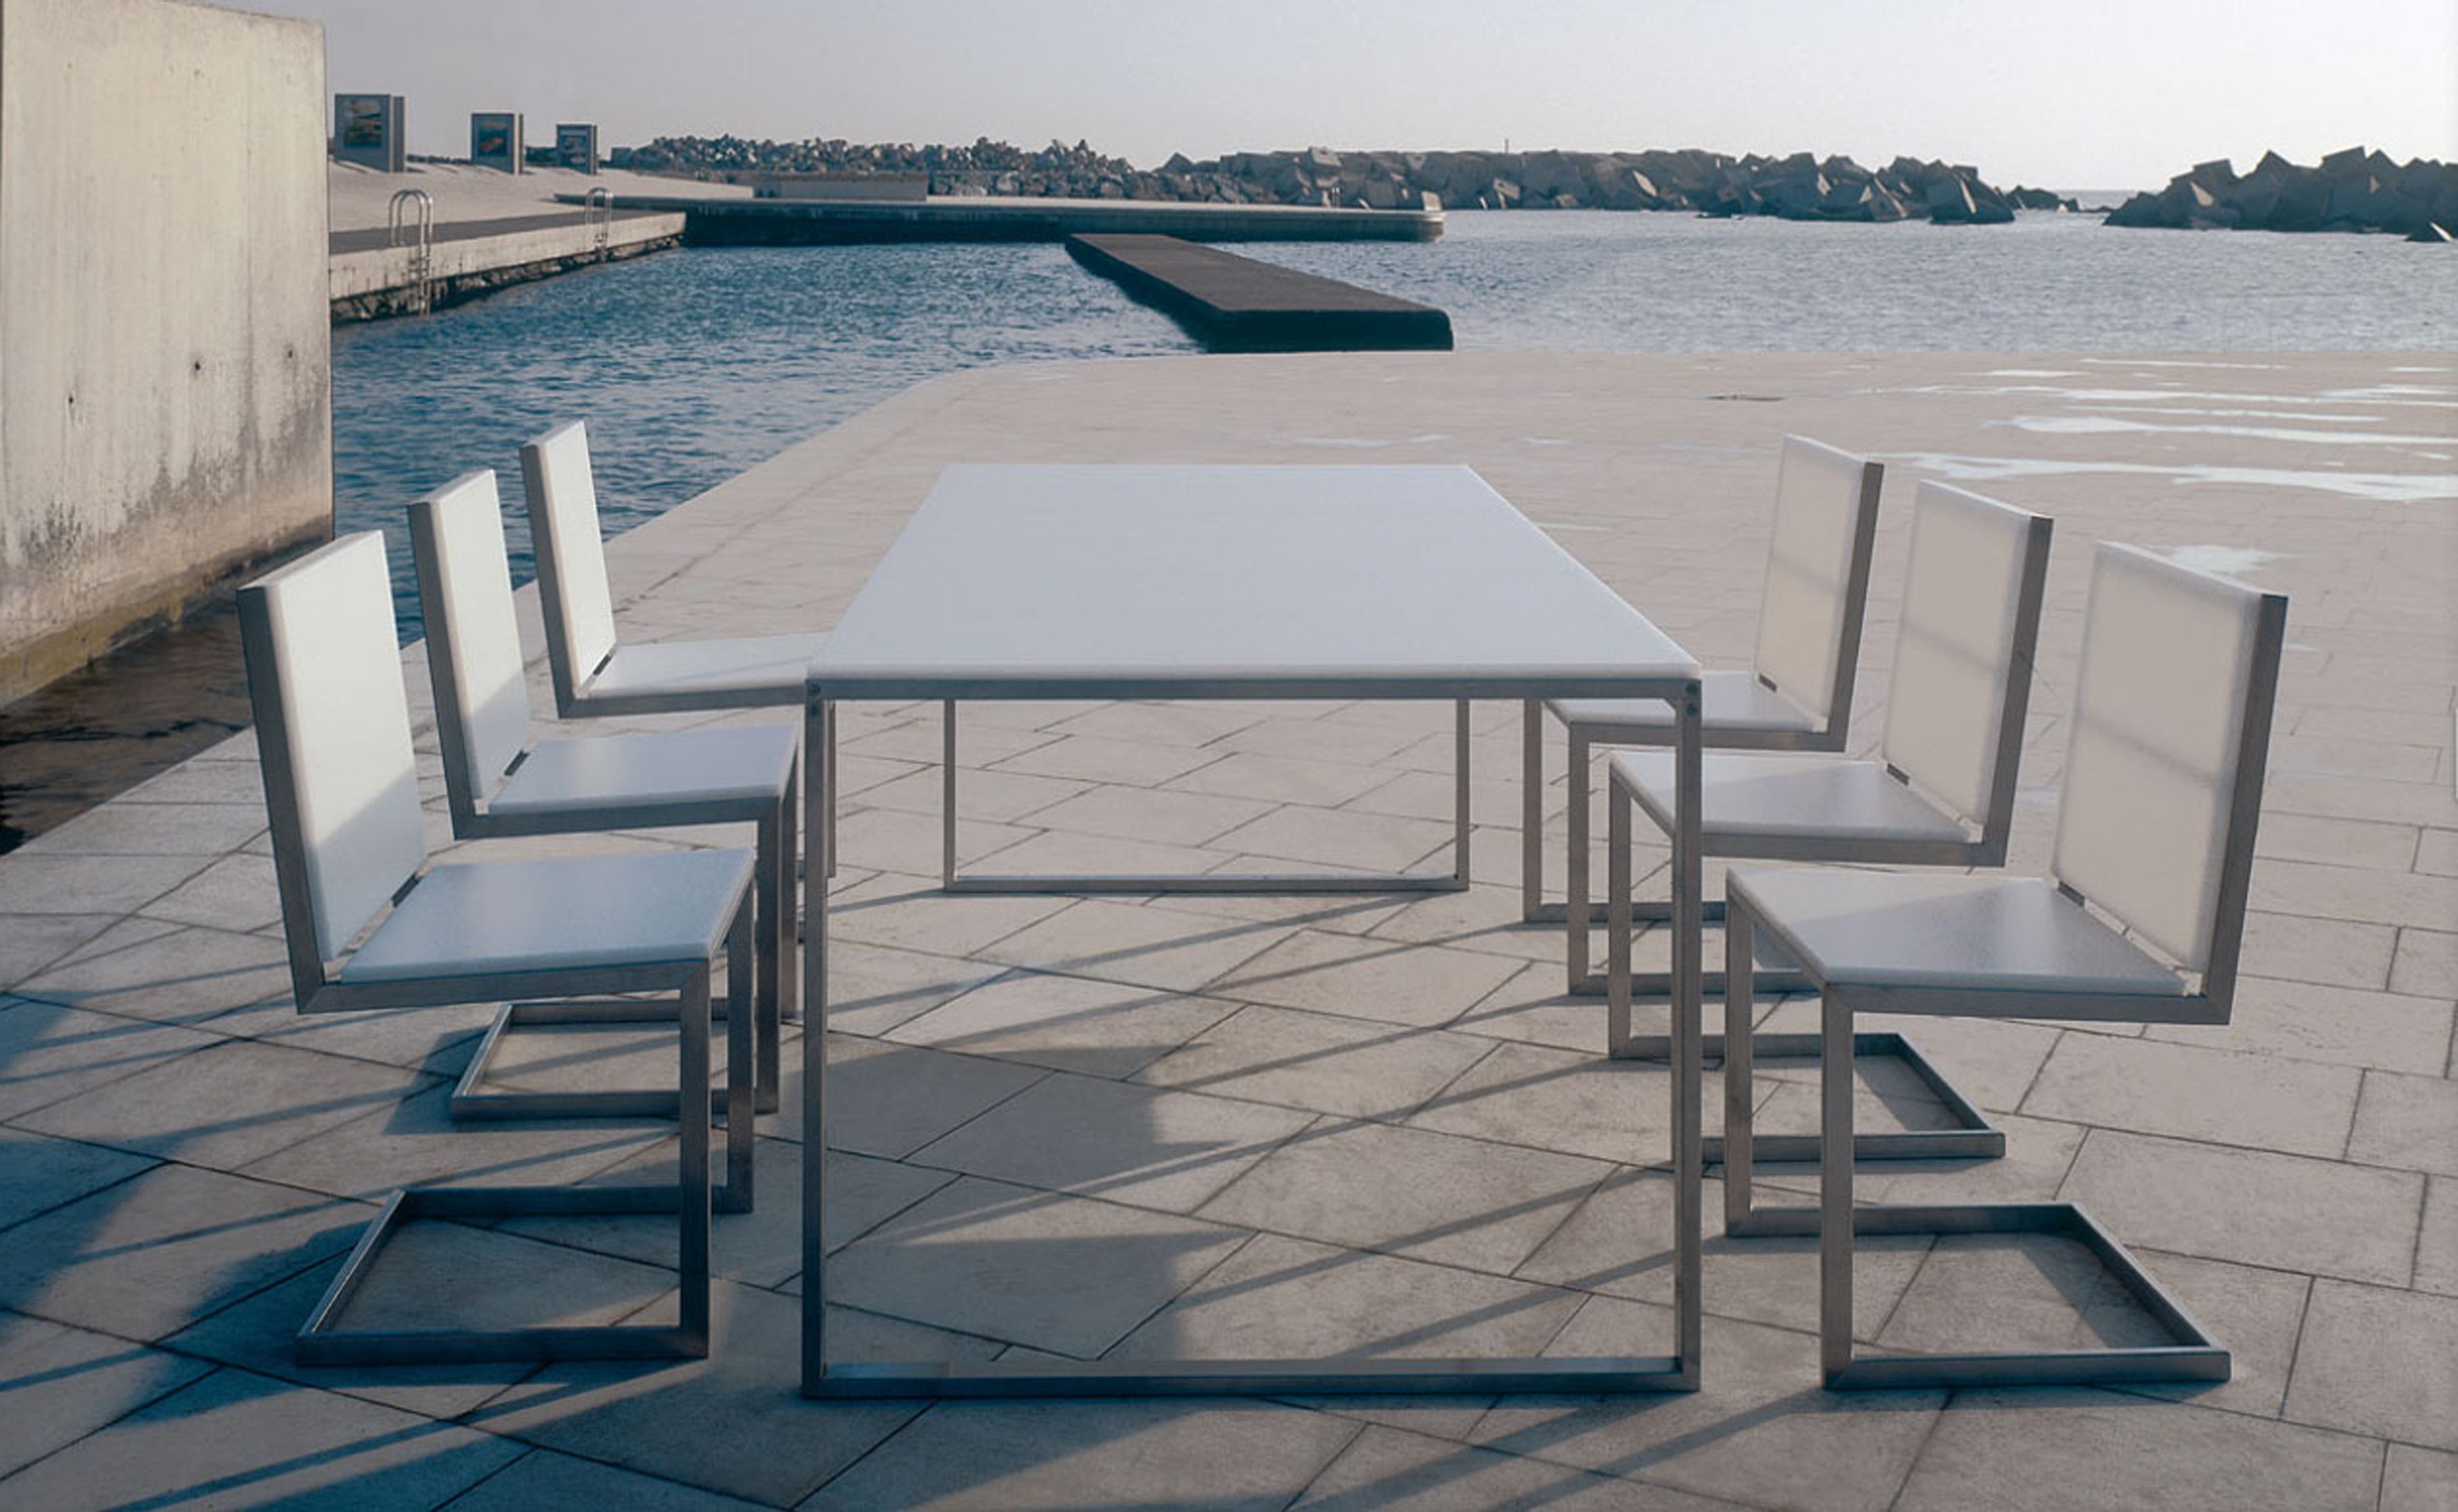 Appealing Modern Outdoor Dining Design Idea With White Dining Table And White Chairs Appealing Modern Outdoor Dining Design Ideas (Image 26 of 28)